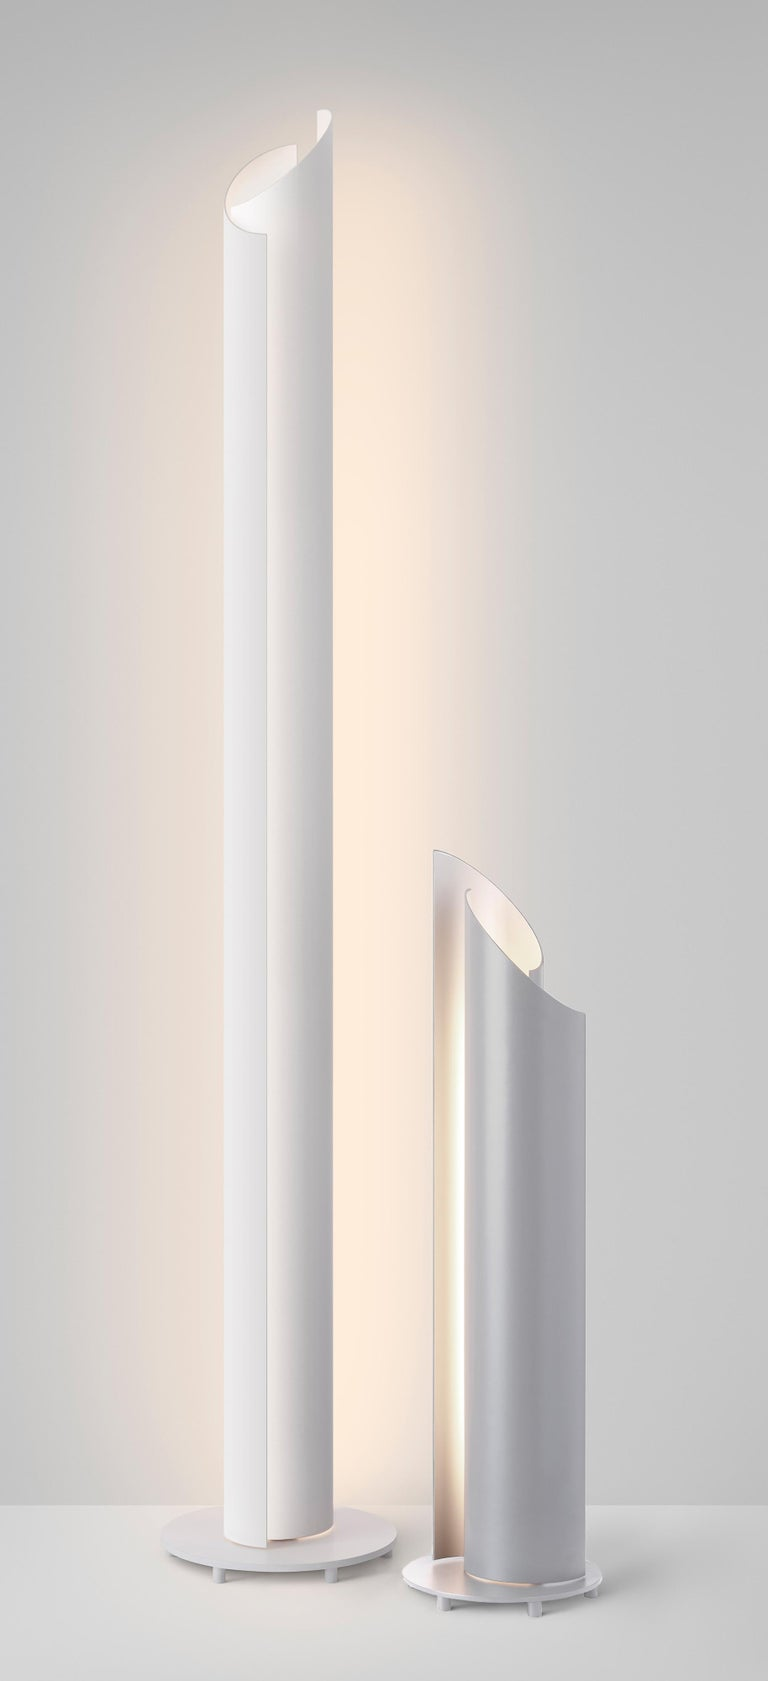 The new Vella series is a dynamic family of luminaires designed to be completely adjustable via two independently swiveling louvers, inviting the user to sculpt light and shadow. Vella's sweeping curved aluminum form subtly captures and releases